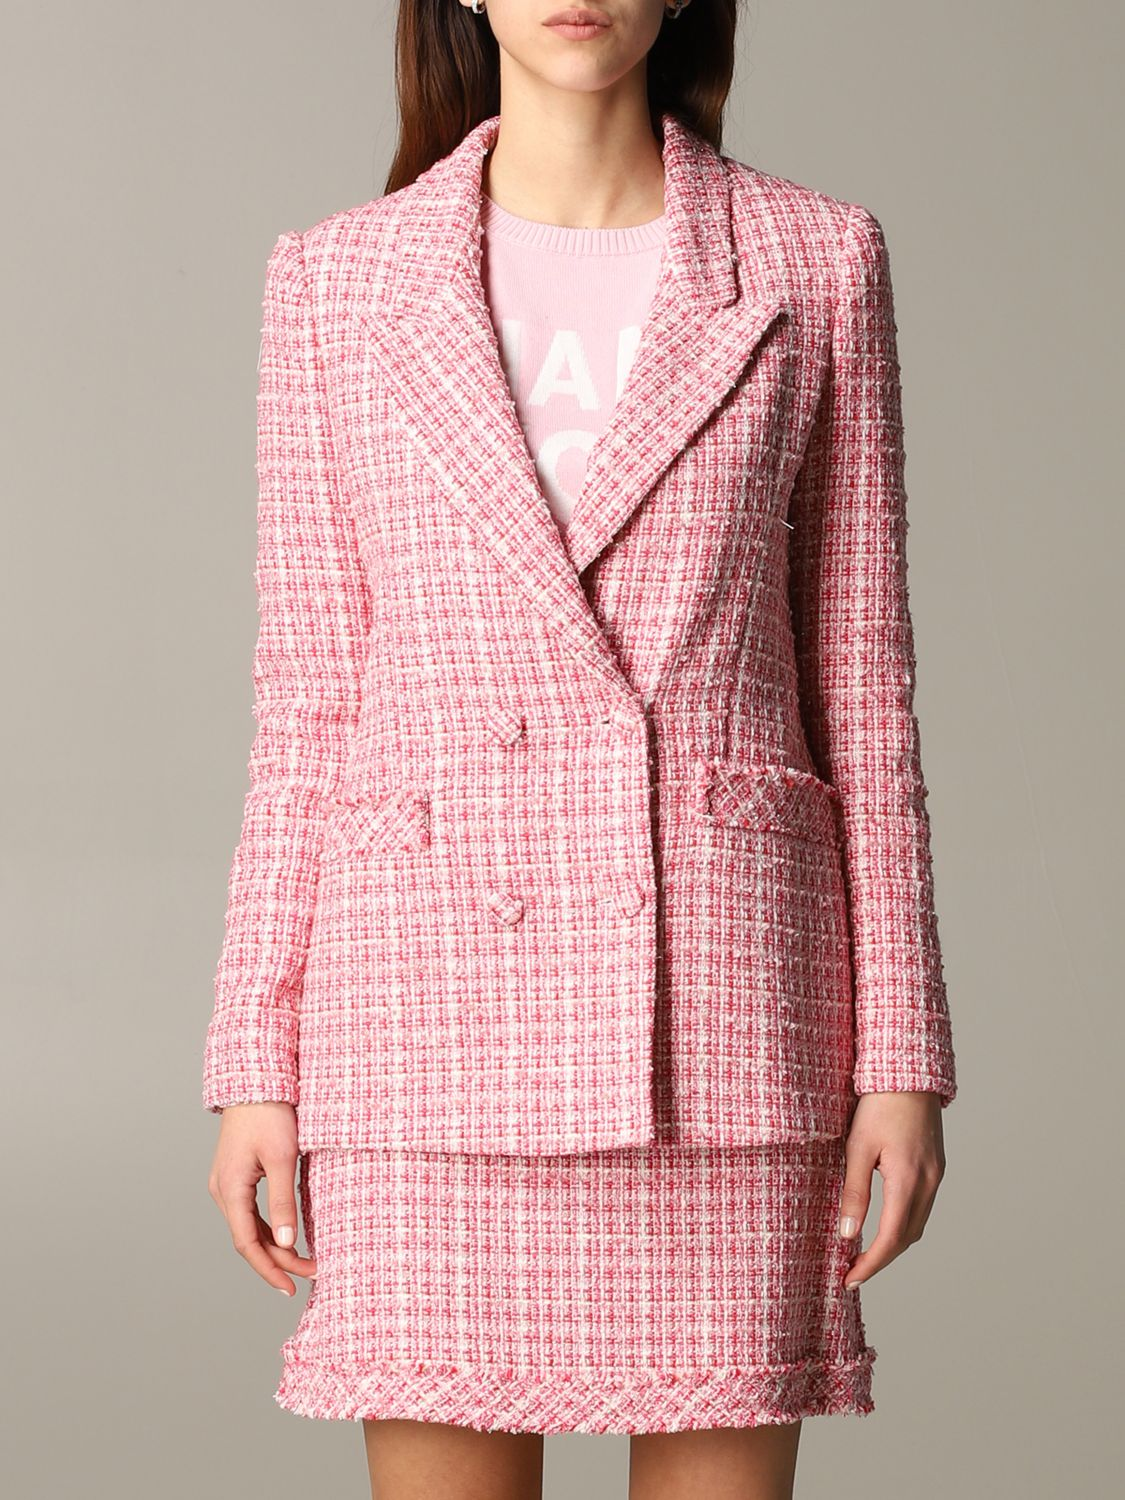 Be Blumarine double-breasted bouclé jacket pink 1